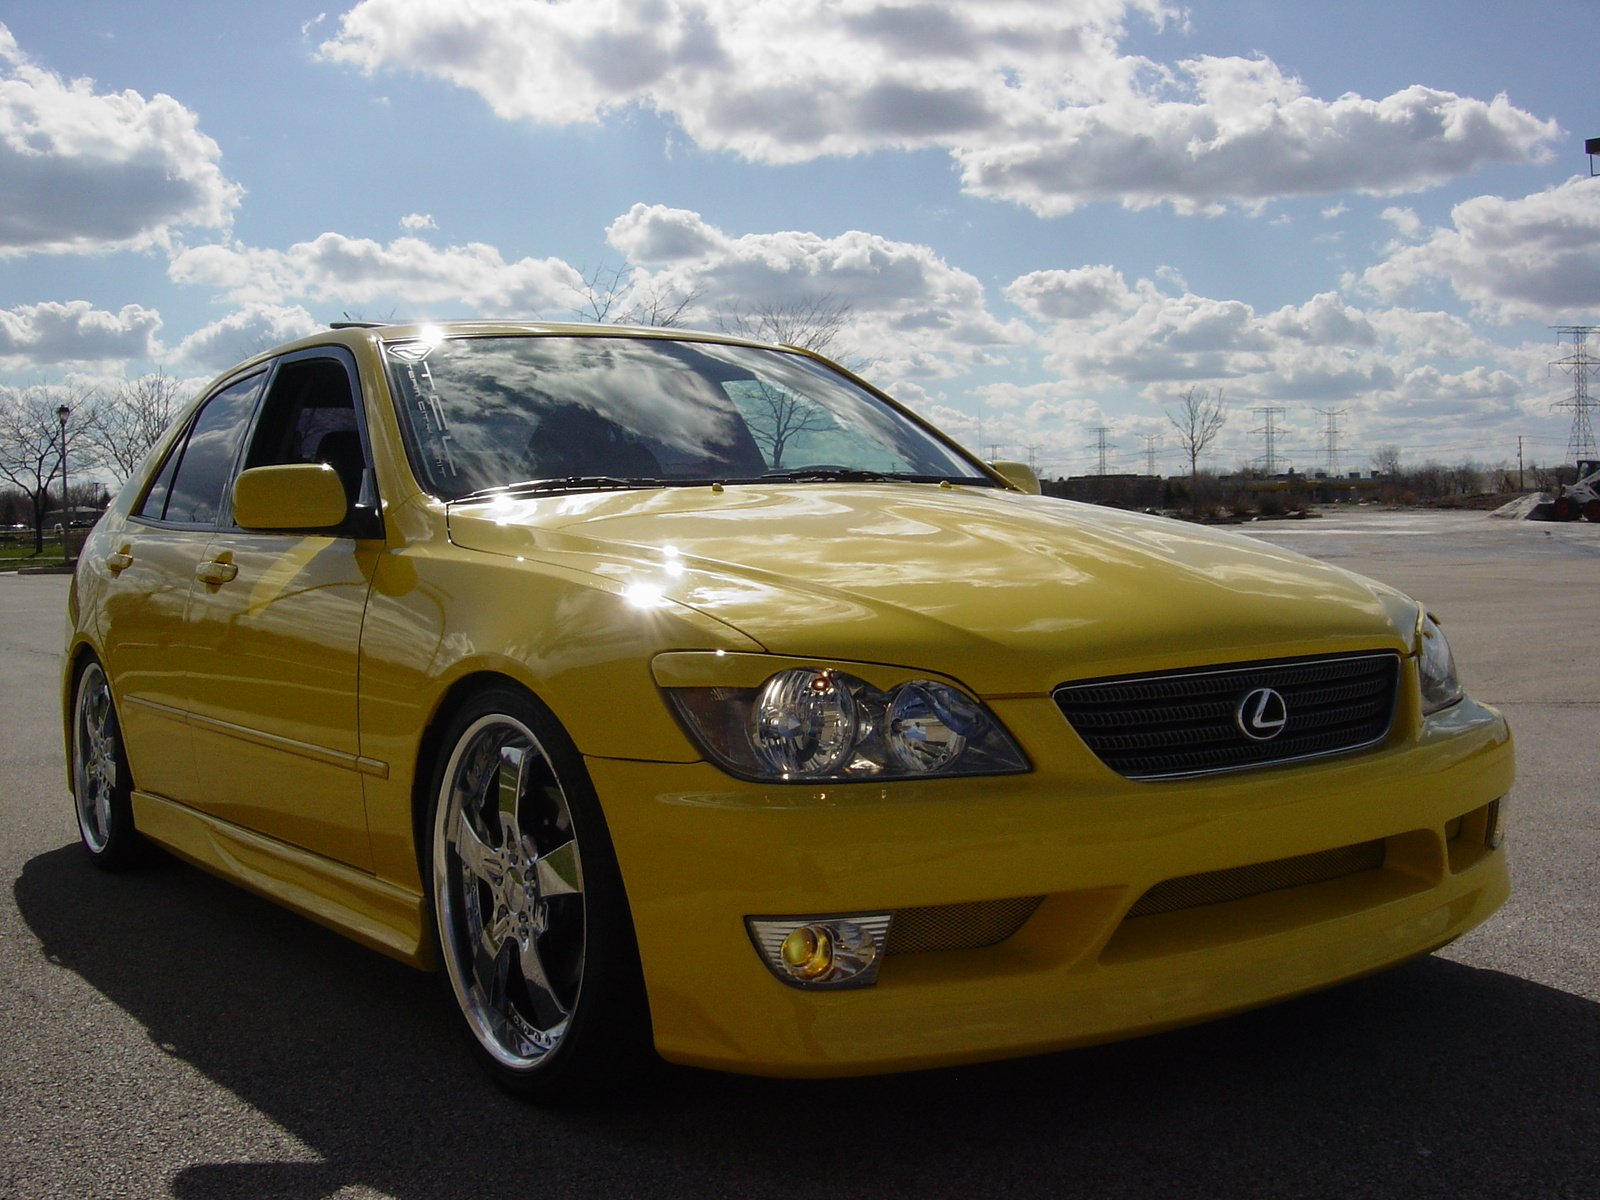 Picture of 2001 Lexus IS 300 STD